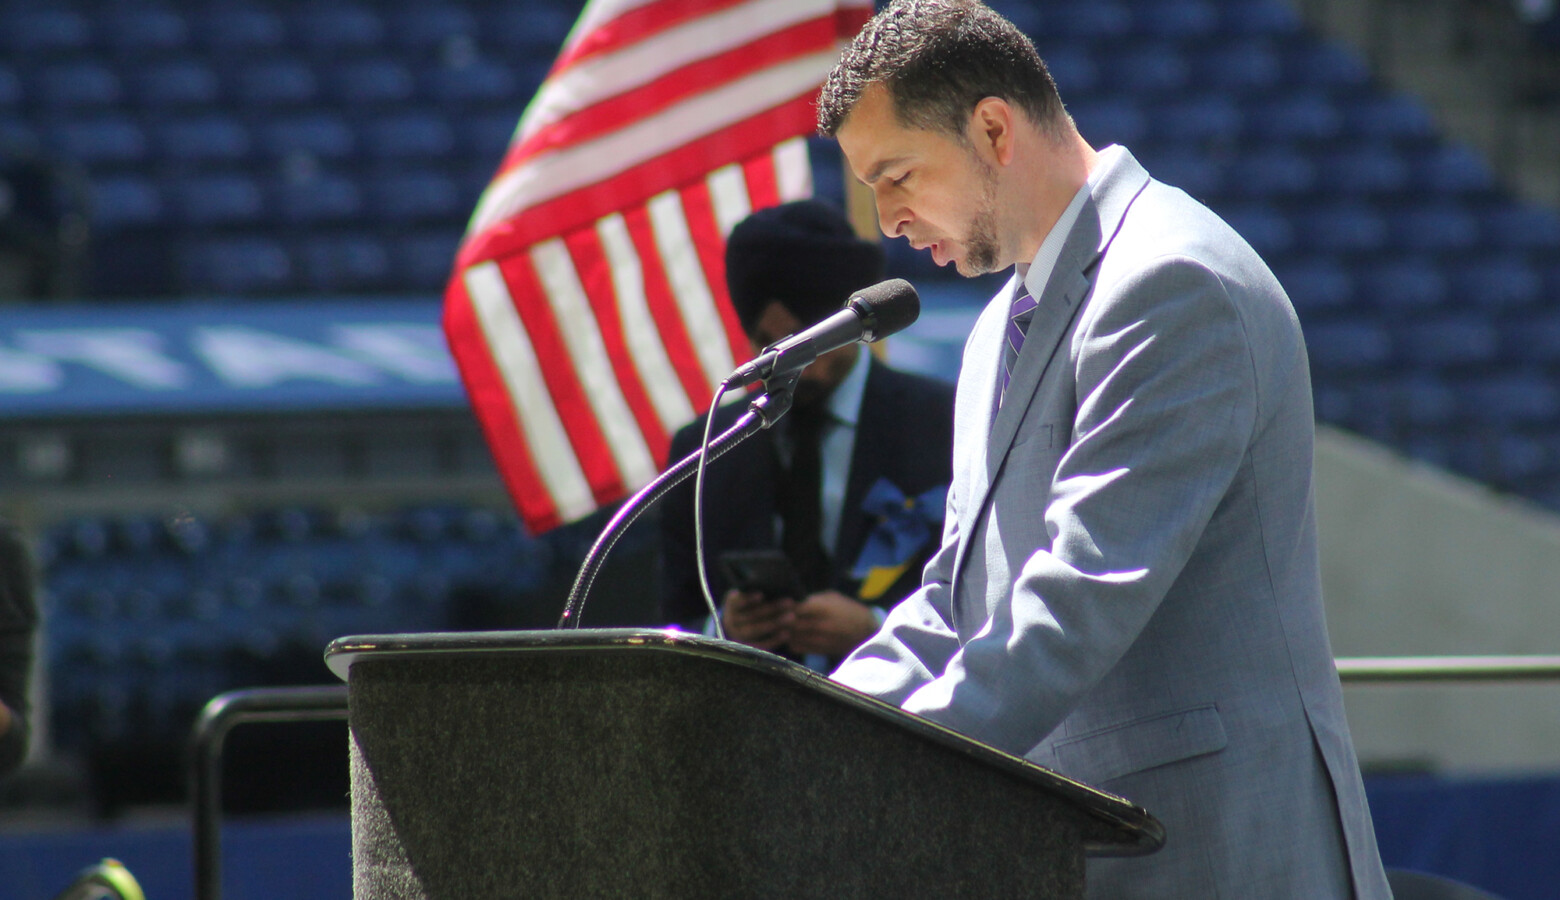 Sen. Fady Qaddoura (D-Indianapolis) spoke at the memorial on Saturday, May 1, calling directly for gun reform and investment in mental health. (Lauren Chapman/IPB News)